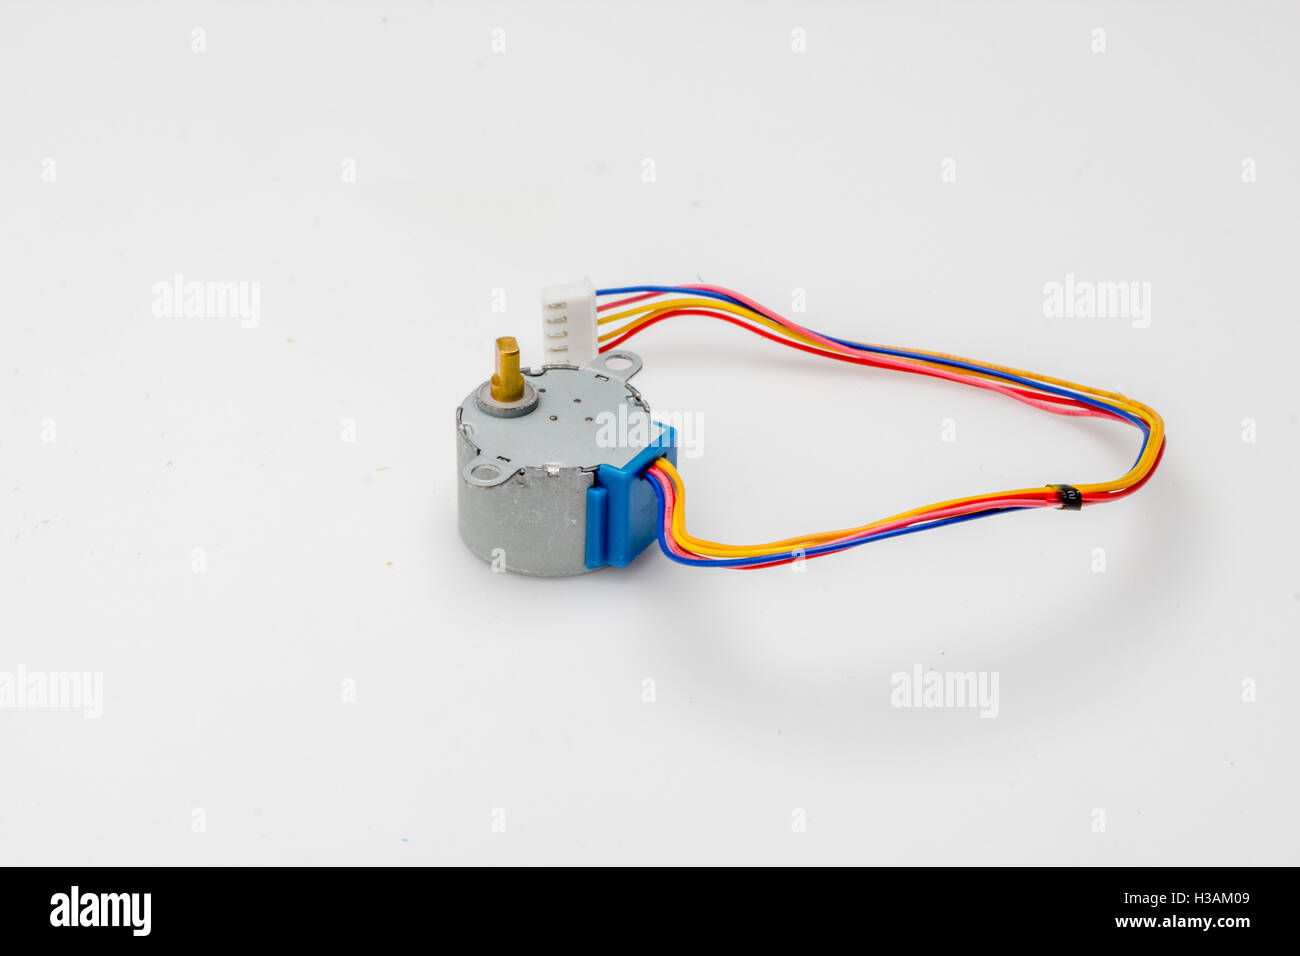 Servo Stock Photos Images Alamy Rc Wiring Diagram Operating A Normal Hobby Motor Rated At 48v To 6v From